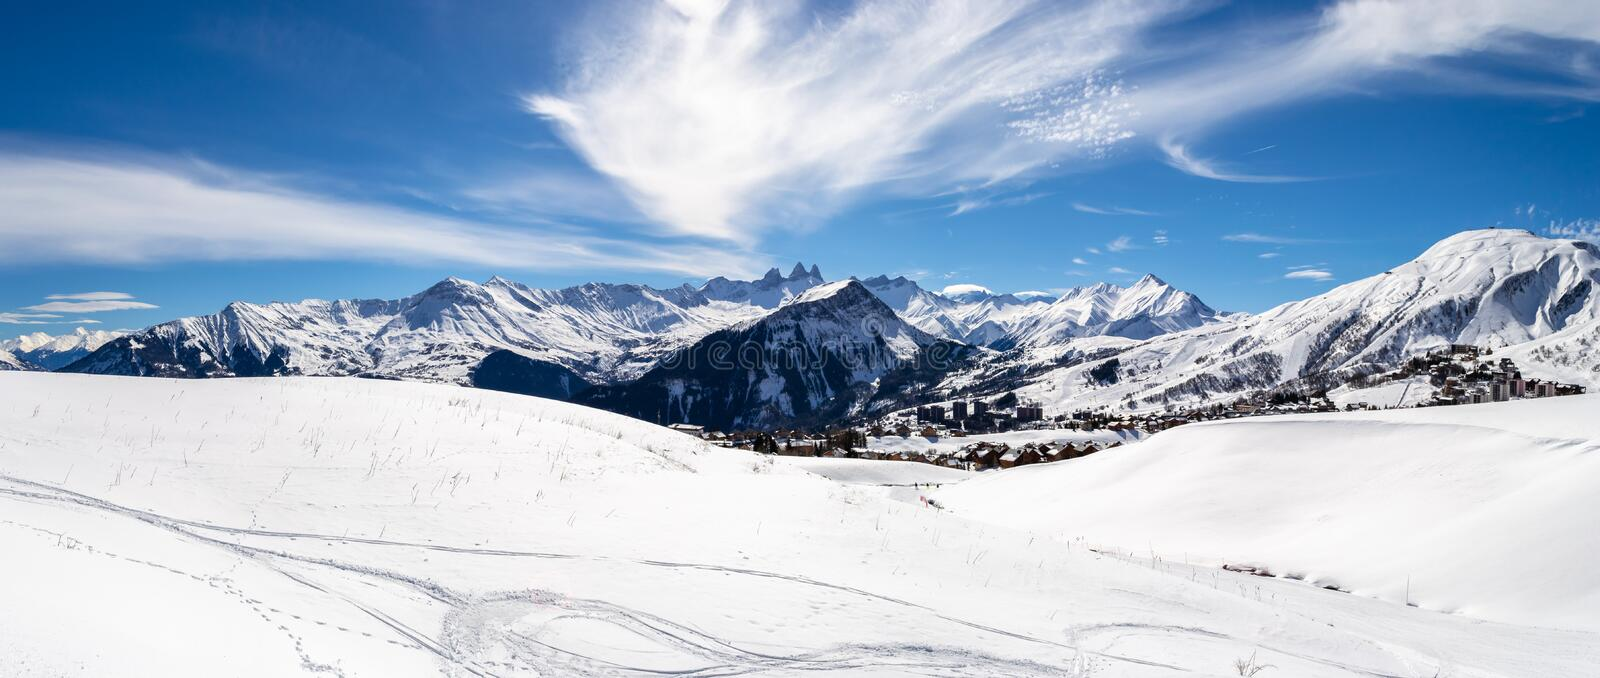 Panoramic landscape with mountain peaks in the French Alps, above La Toussuire village, on a sunny Winter day, in Les Sybelles. Ski area stock photo